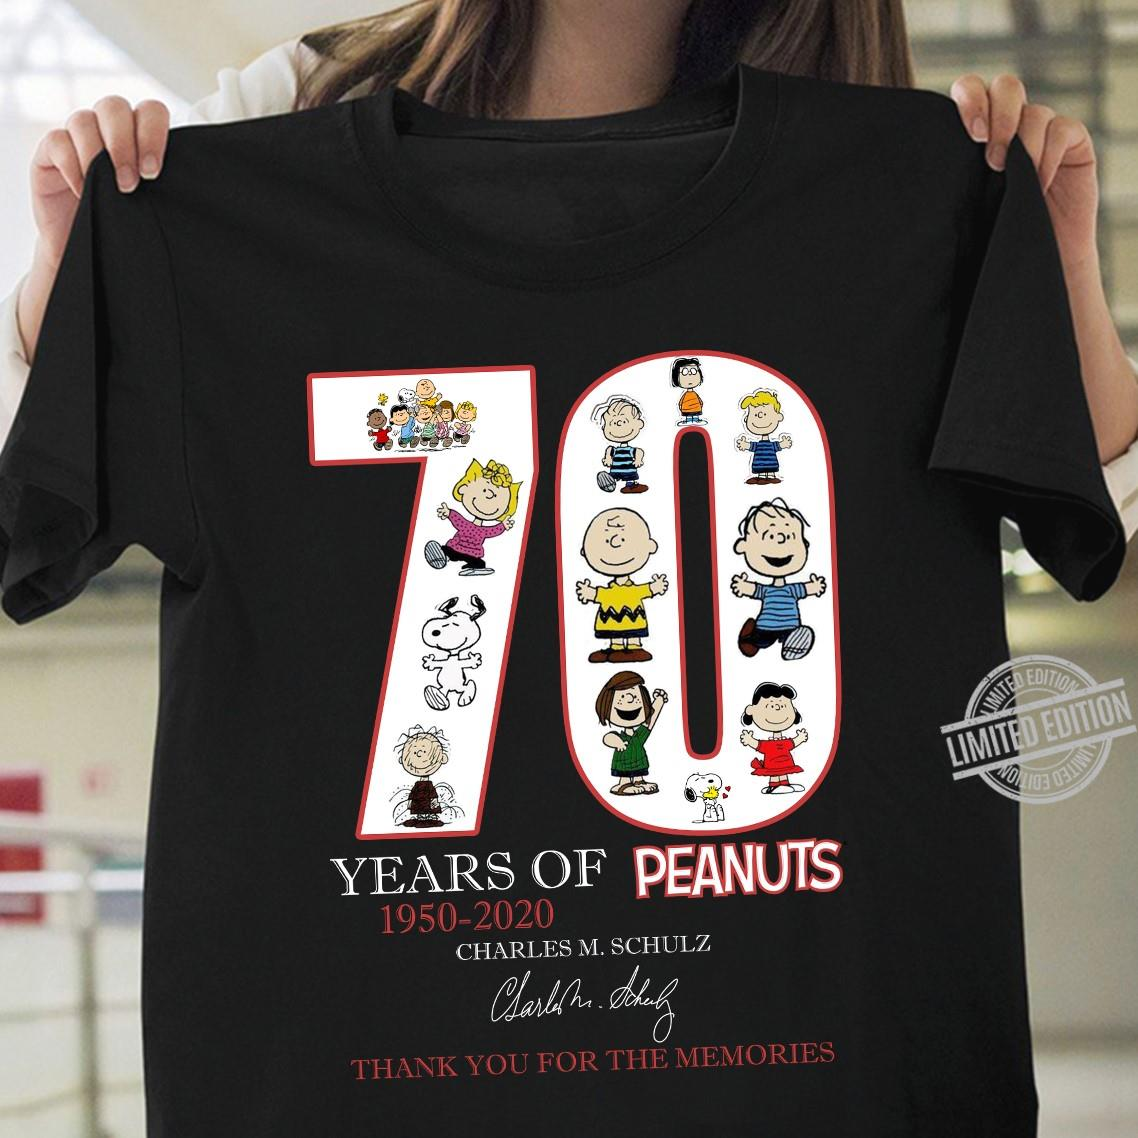 70 Years Of Peanuts 1950 2020 Charles M. Schulz Signature Thank You For The Memories Shirt